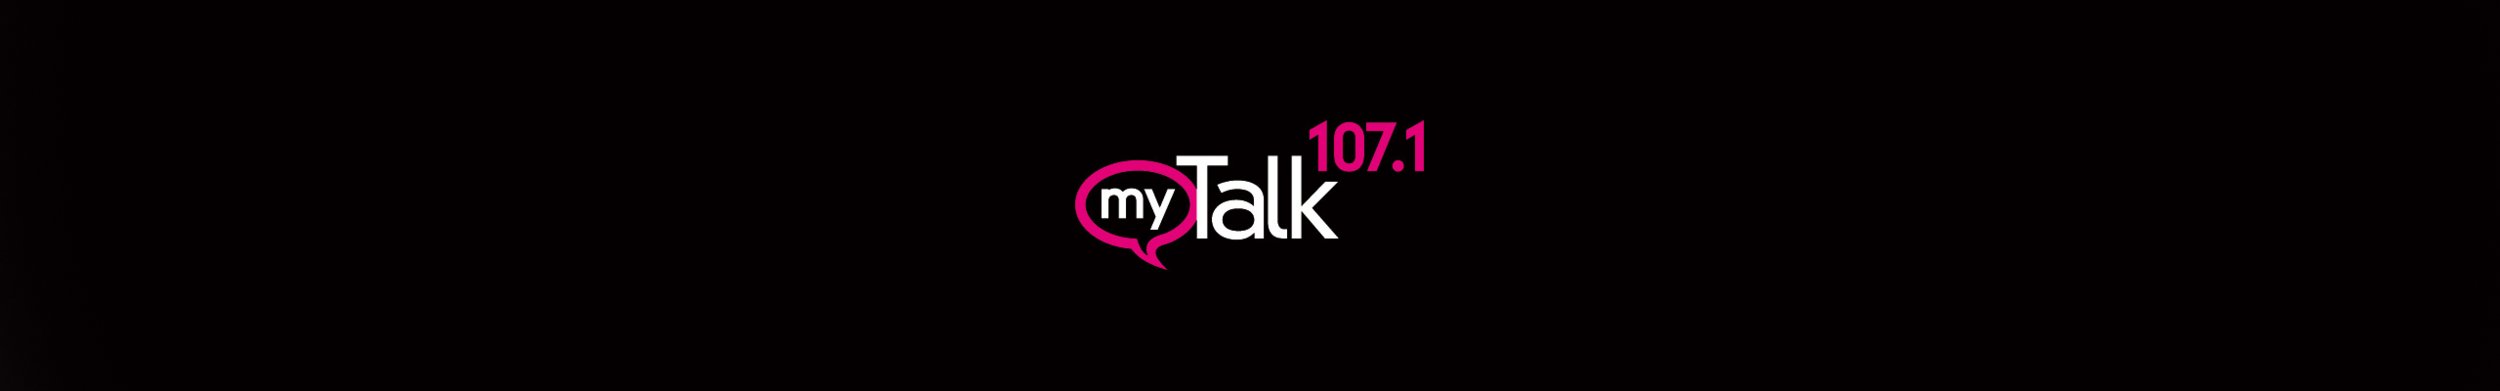 Minneapolis Makeup Artist and Creative Director for WarPaint International Beauty Agency, as heard on MyTalk107.1